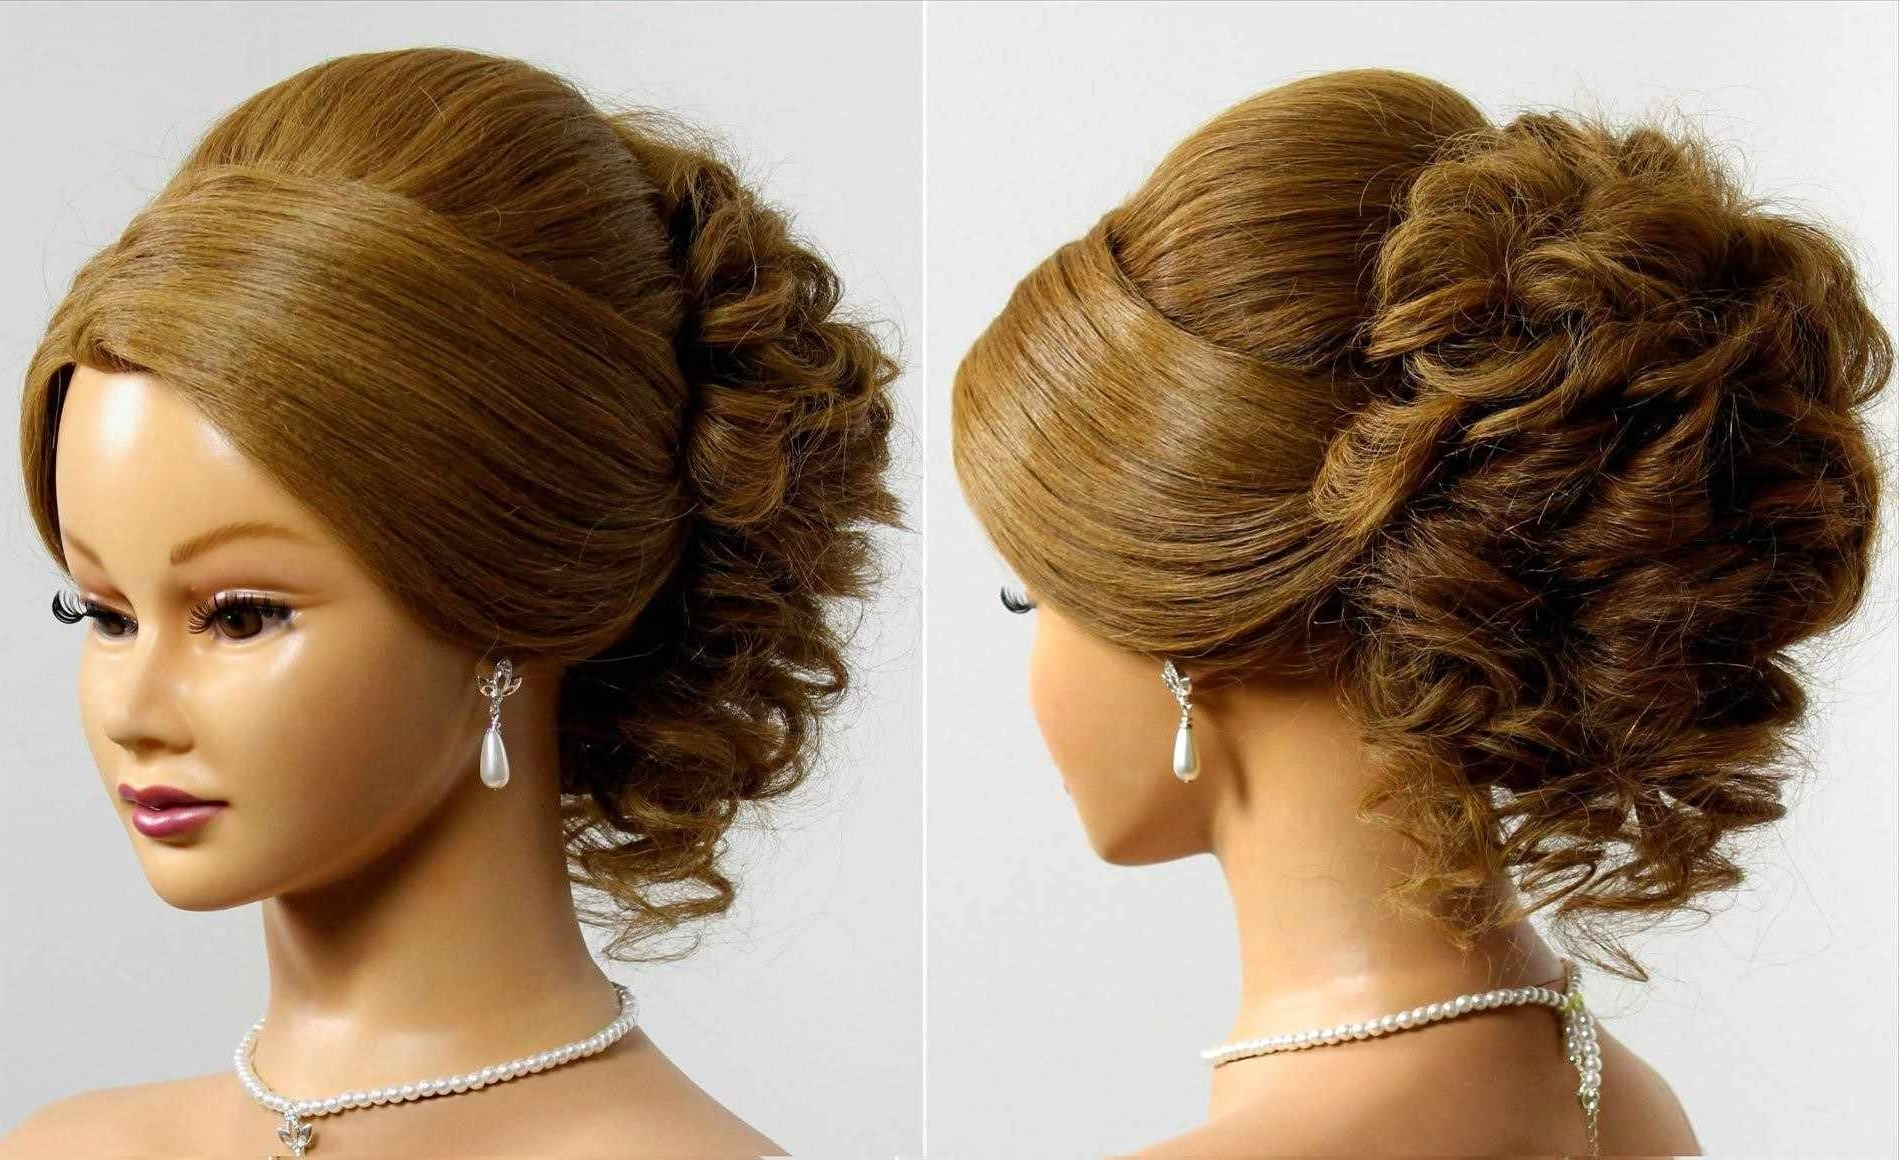 Bride Updo Hairstyles | Justswimfl In Bride Updo Hairstyles (View 5 of 15)